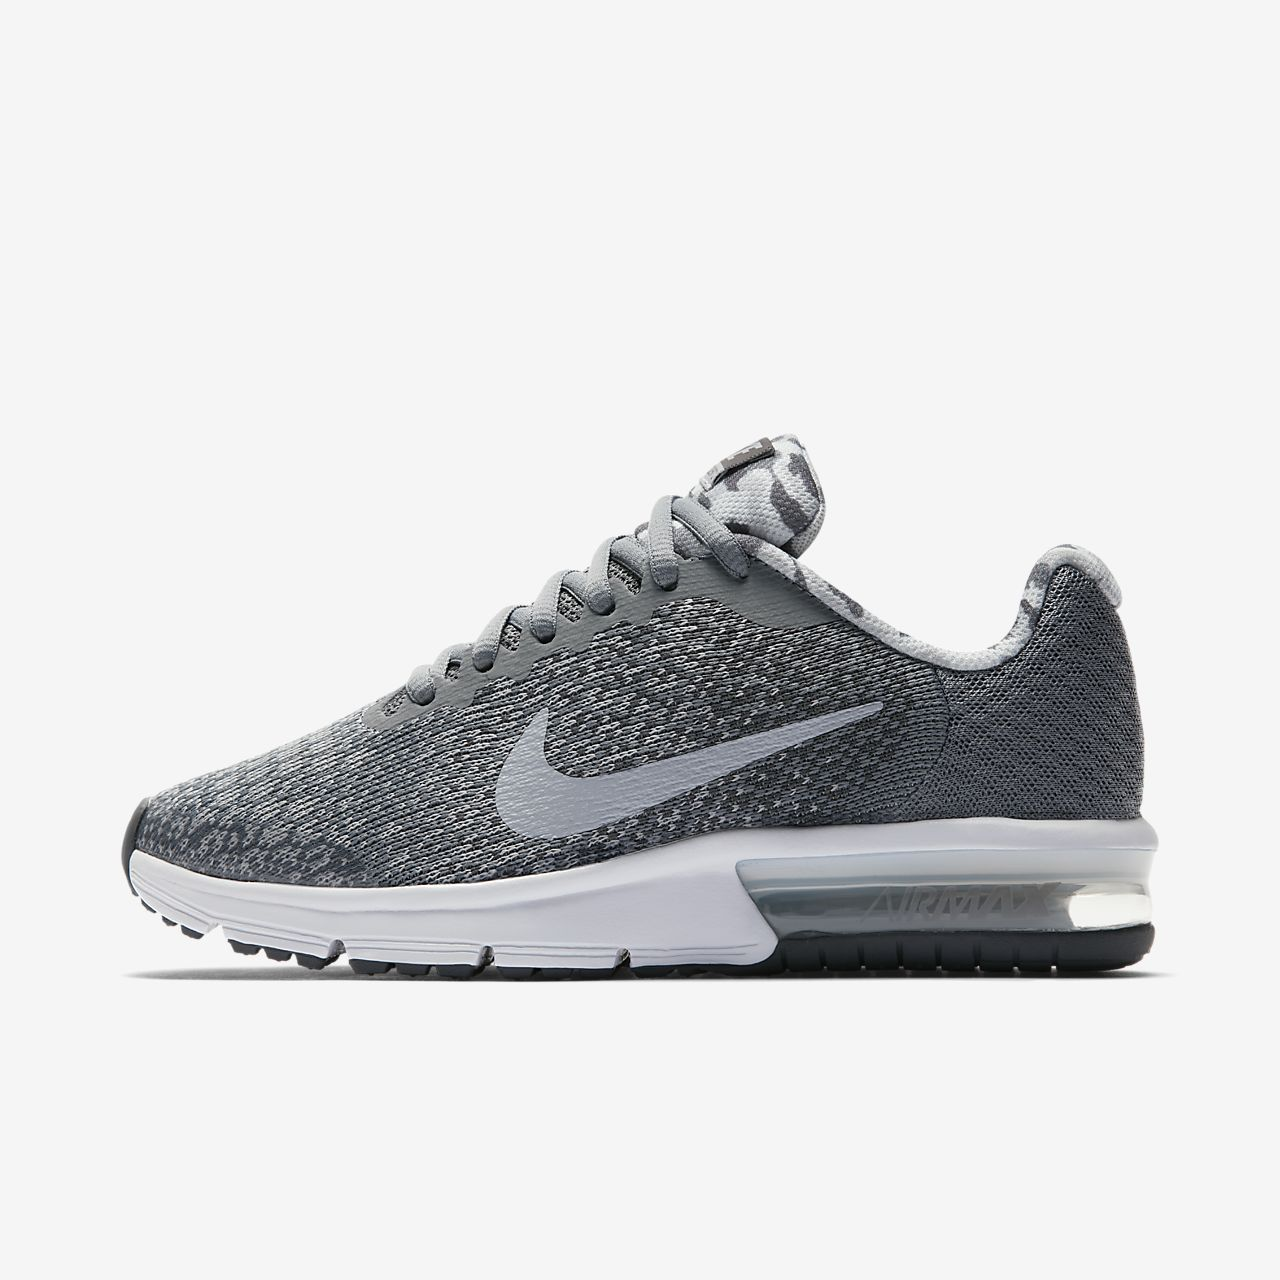 84bb9f051517 ... closeout nike air max sequent 2 older kids shoe eb292 fcaf7